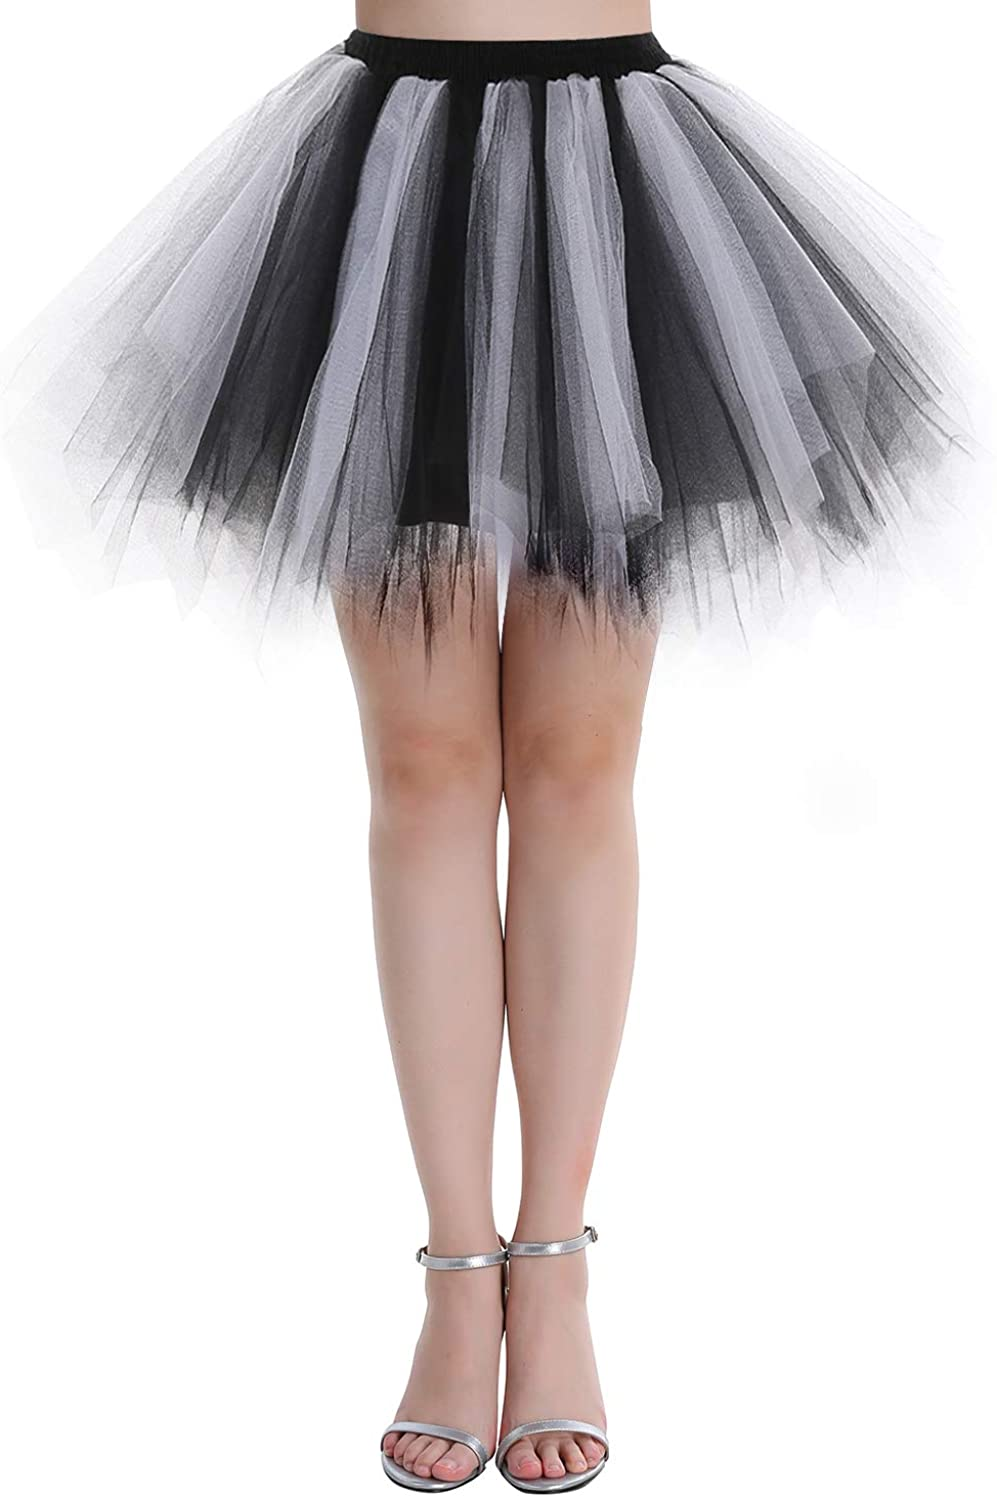 Dressystar Women's 1950s Tulle Tutu Party Dance Skirt Multi-layer (15 Colors)